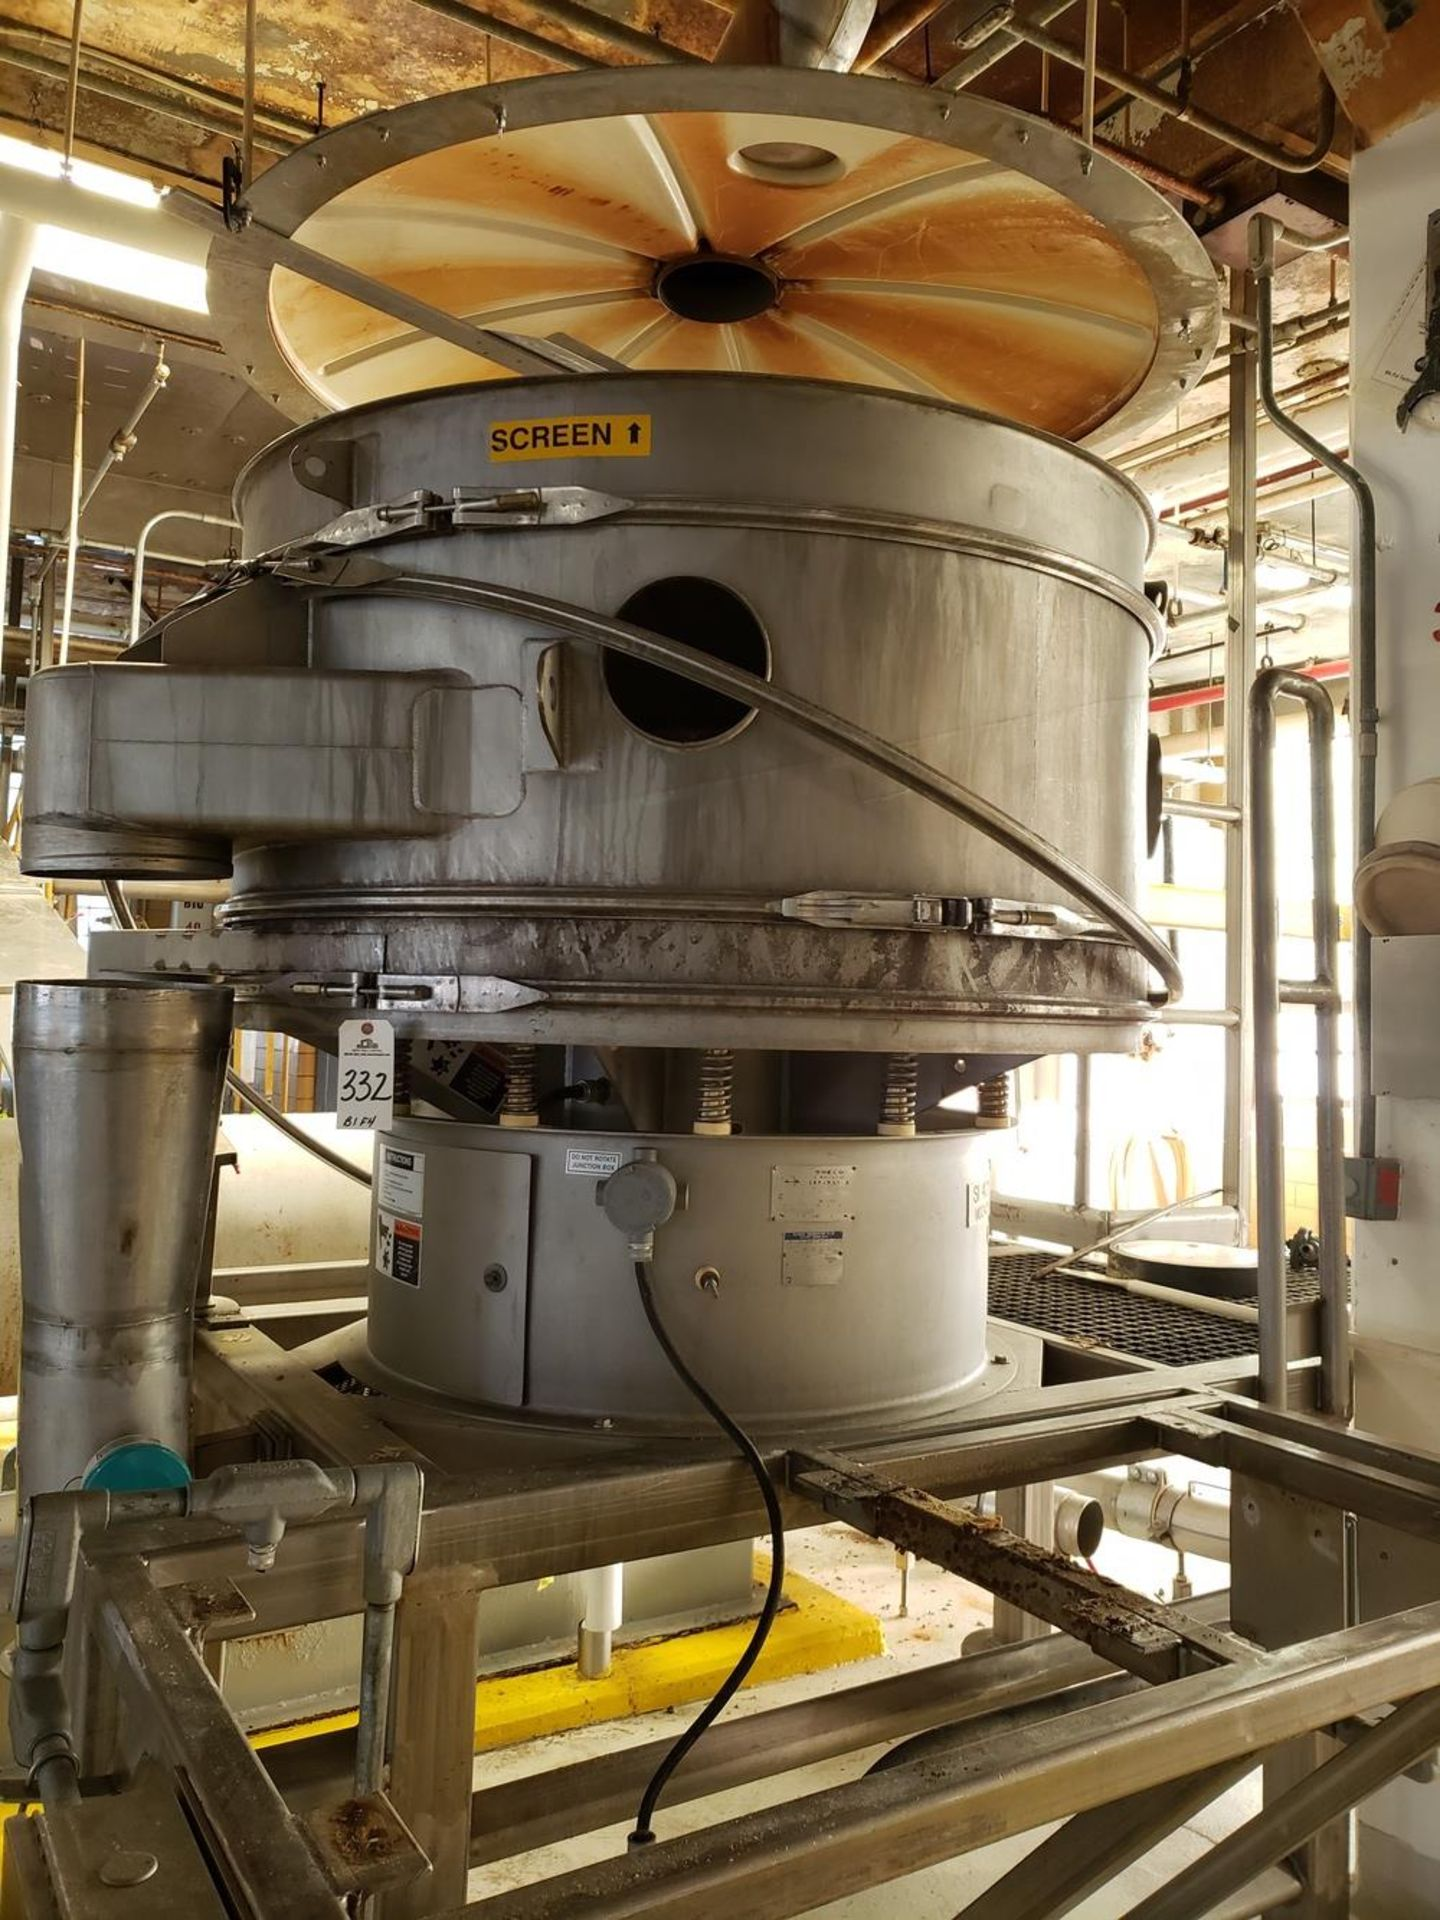 Lot 332 - Sweco Separator Sieve, M# XS60S41866, S/N 786739-A0601 | Rig Fee: $600